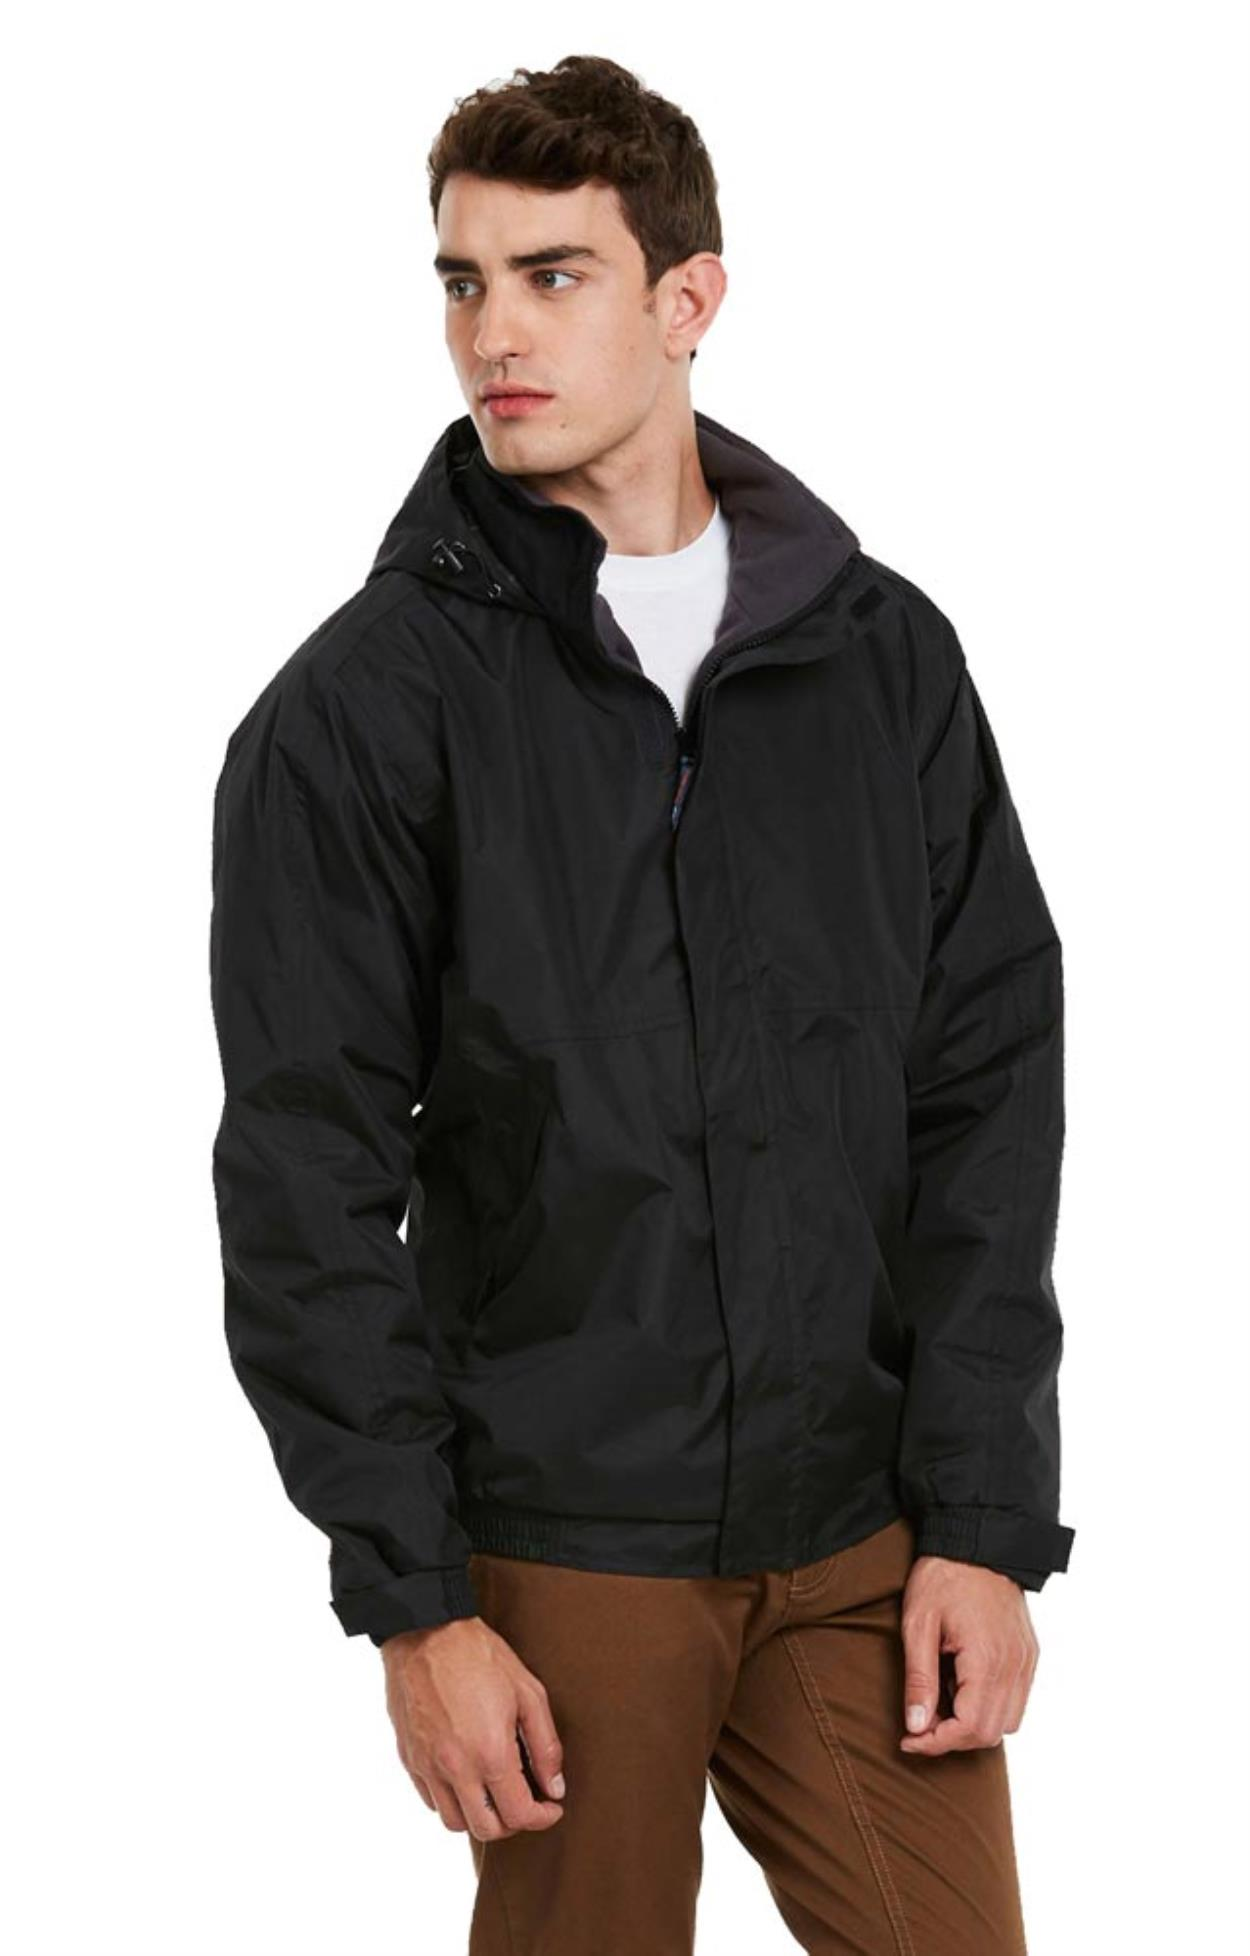 UC620 - Premium Outdoor Jacket